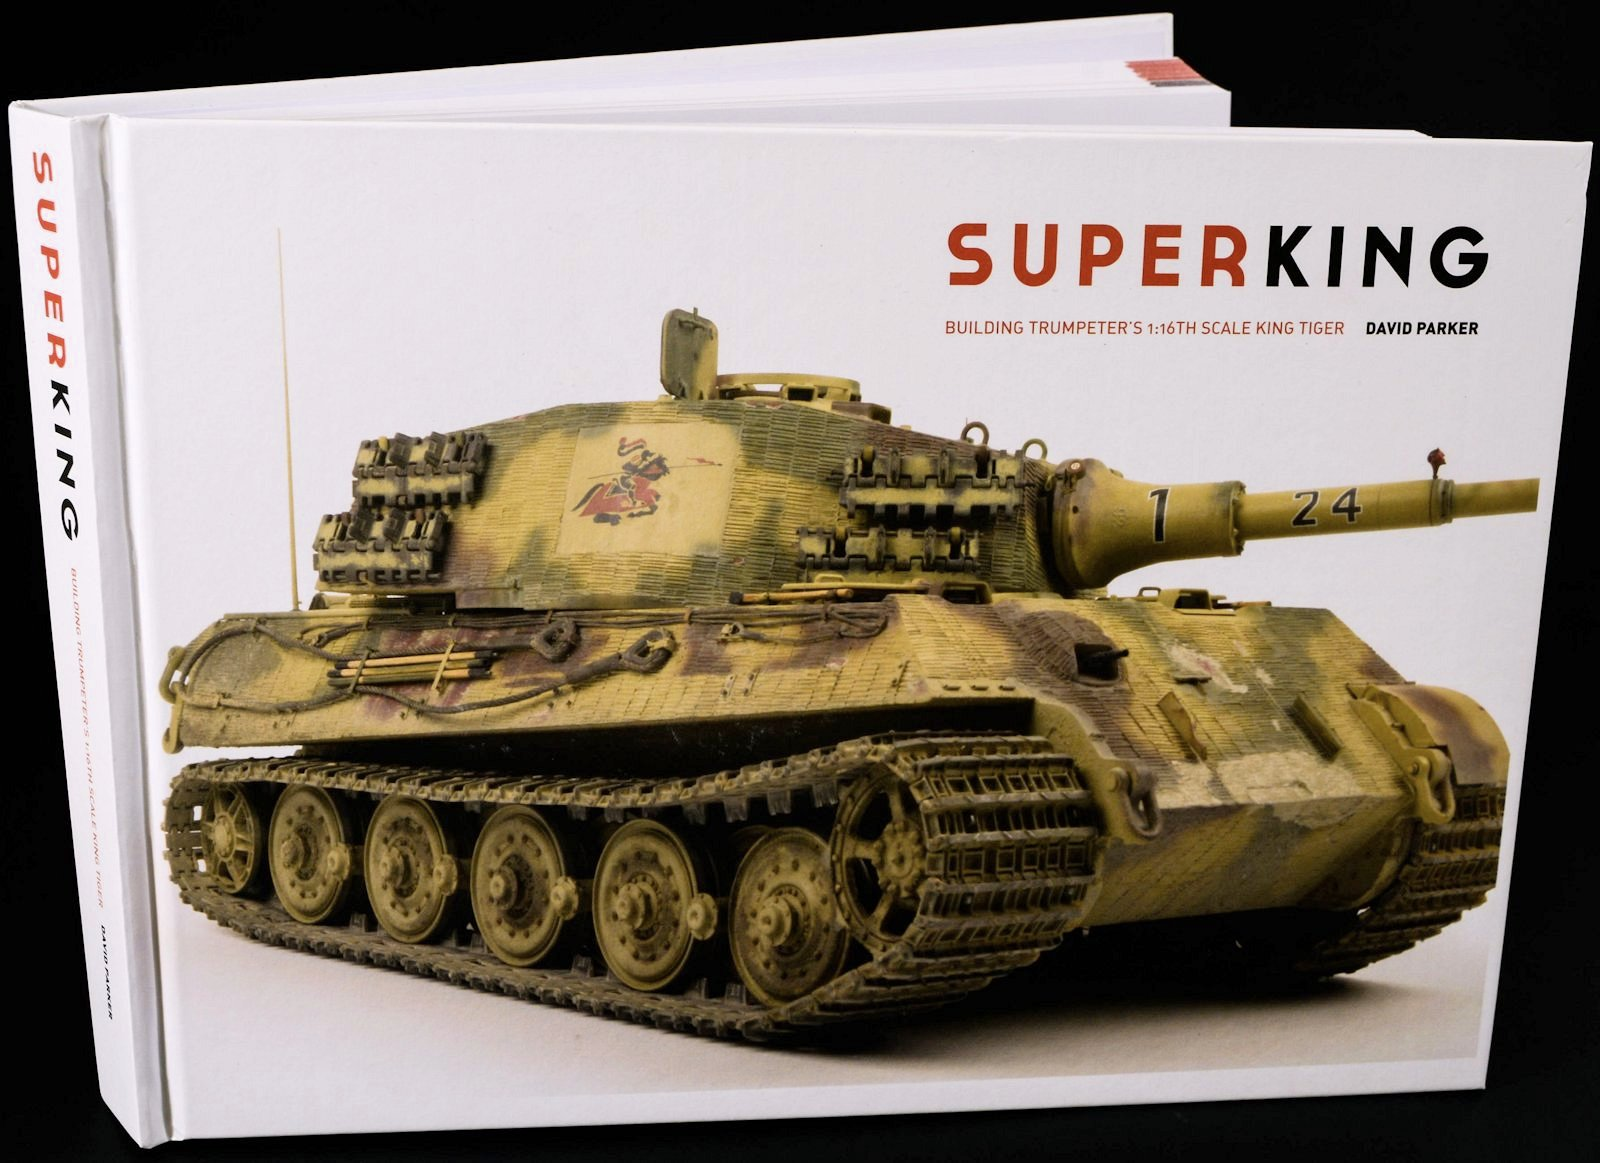 The Modelling News Superking Building Trumpeter S 1 16th Scale